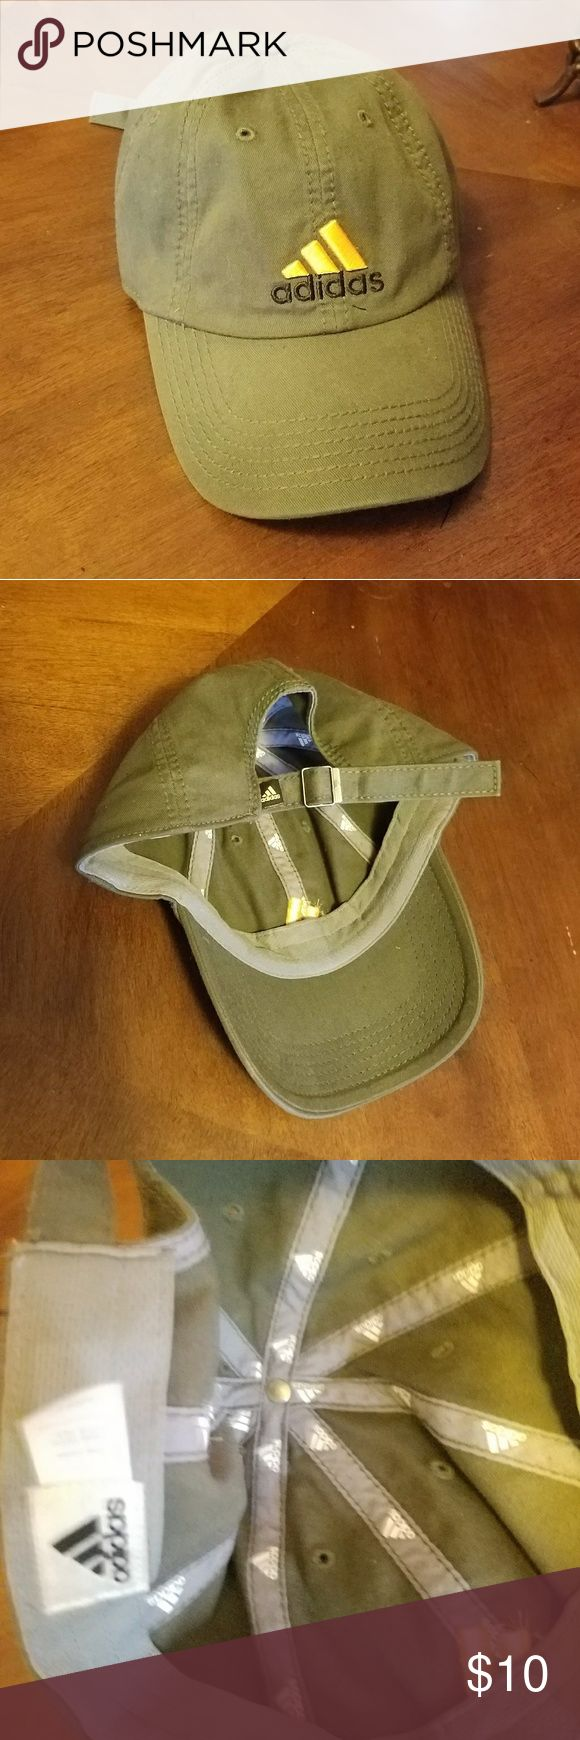 Adidas Snapback Cap Olive green with yellow symbol Good condition No stains maybe worn once or twice adidas Accessories Hats